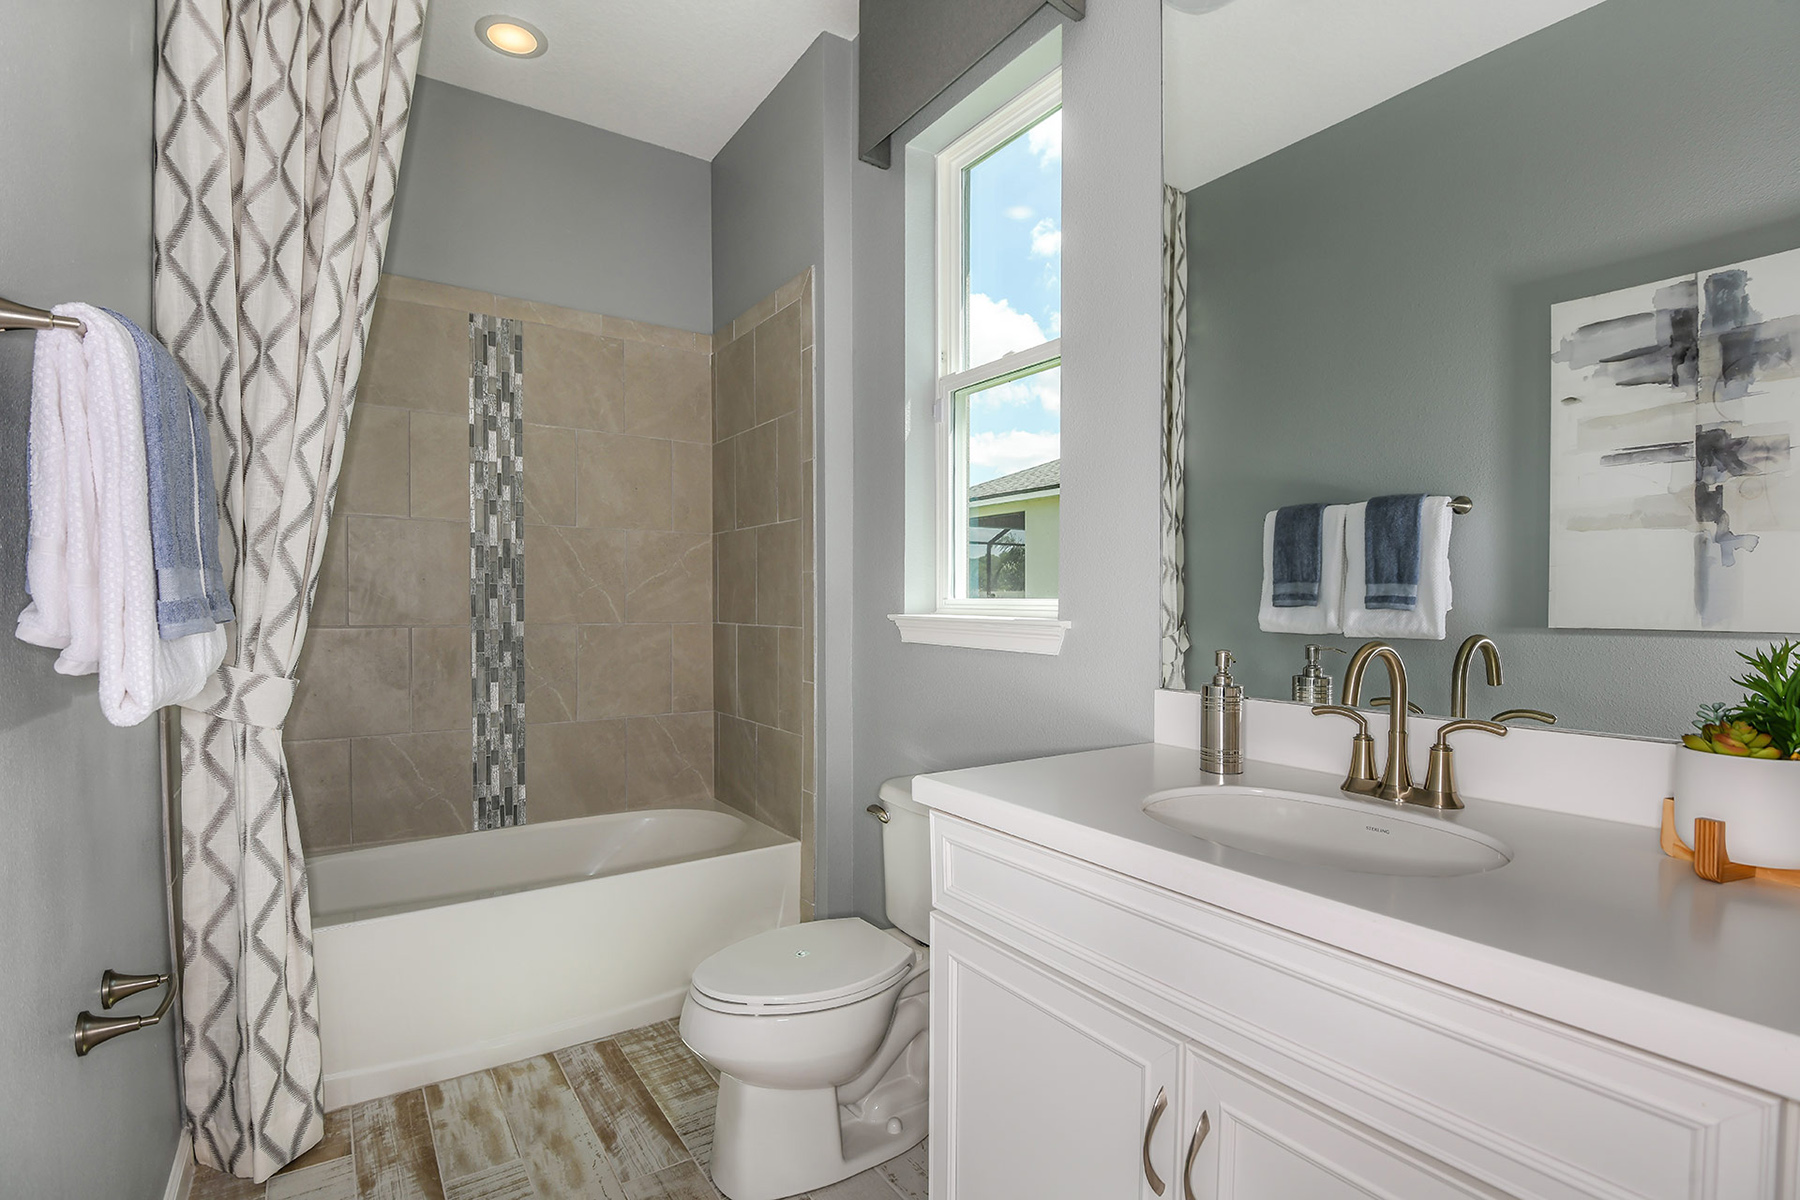 Coquina II Plan Bath at Wellen Park - Renaissance in Venice Florida by Mattamy Homes